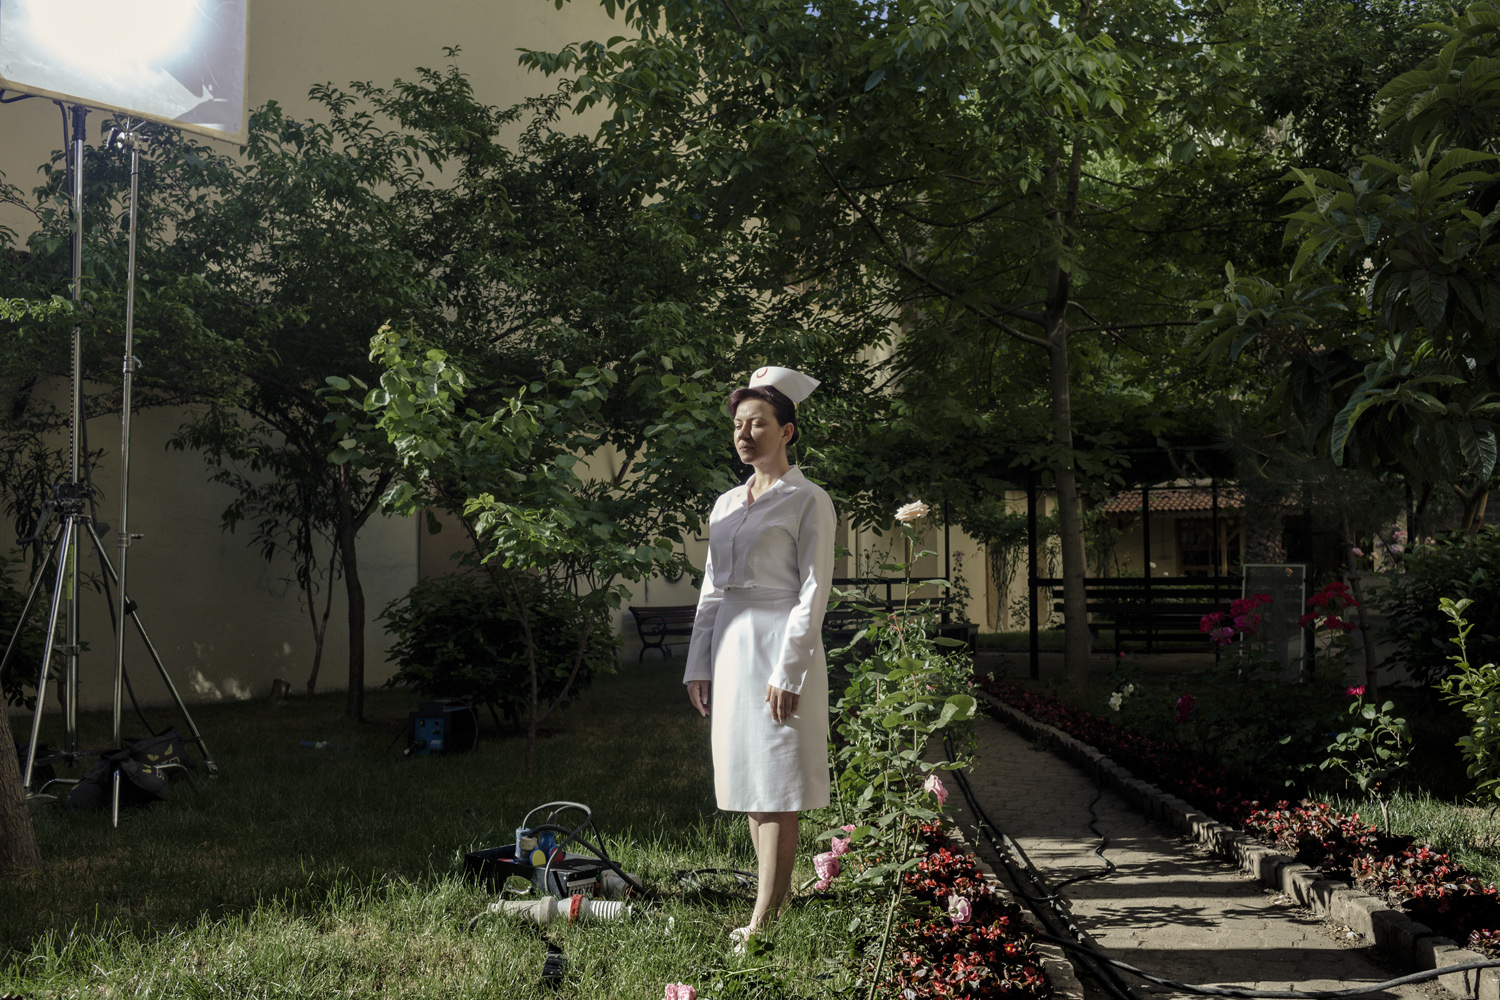 """A woman stands in a school in the Sulthanehamet district of Istanbul during the filming of  Oyle Bir Gecer Zaman Ki,  or  As Time Goes By,"""" one of the most loved and most watched Turkish soap operas in the Middle East and North Africa, May 2013."""